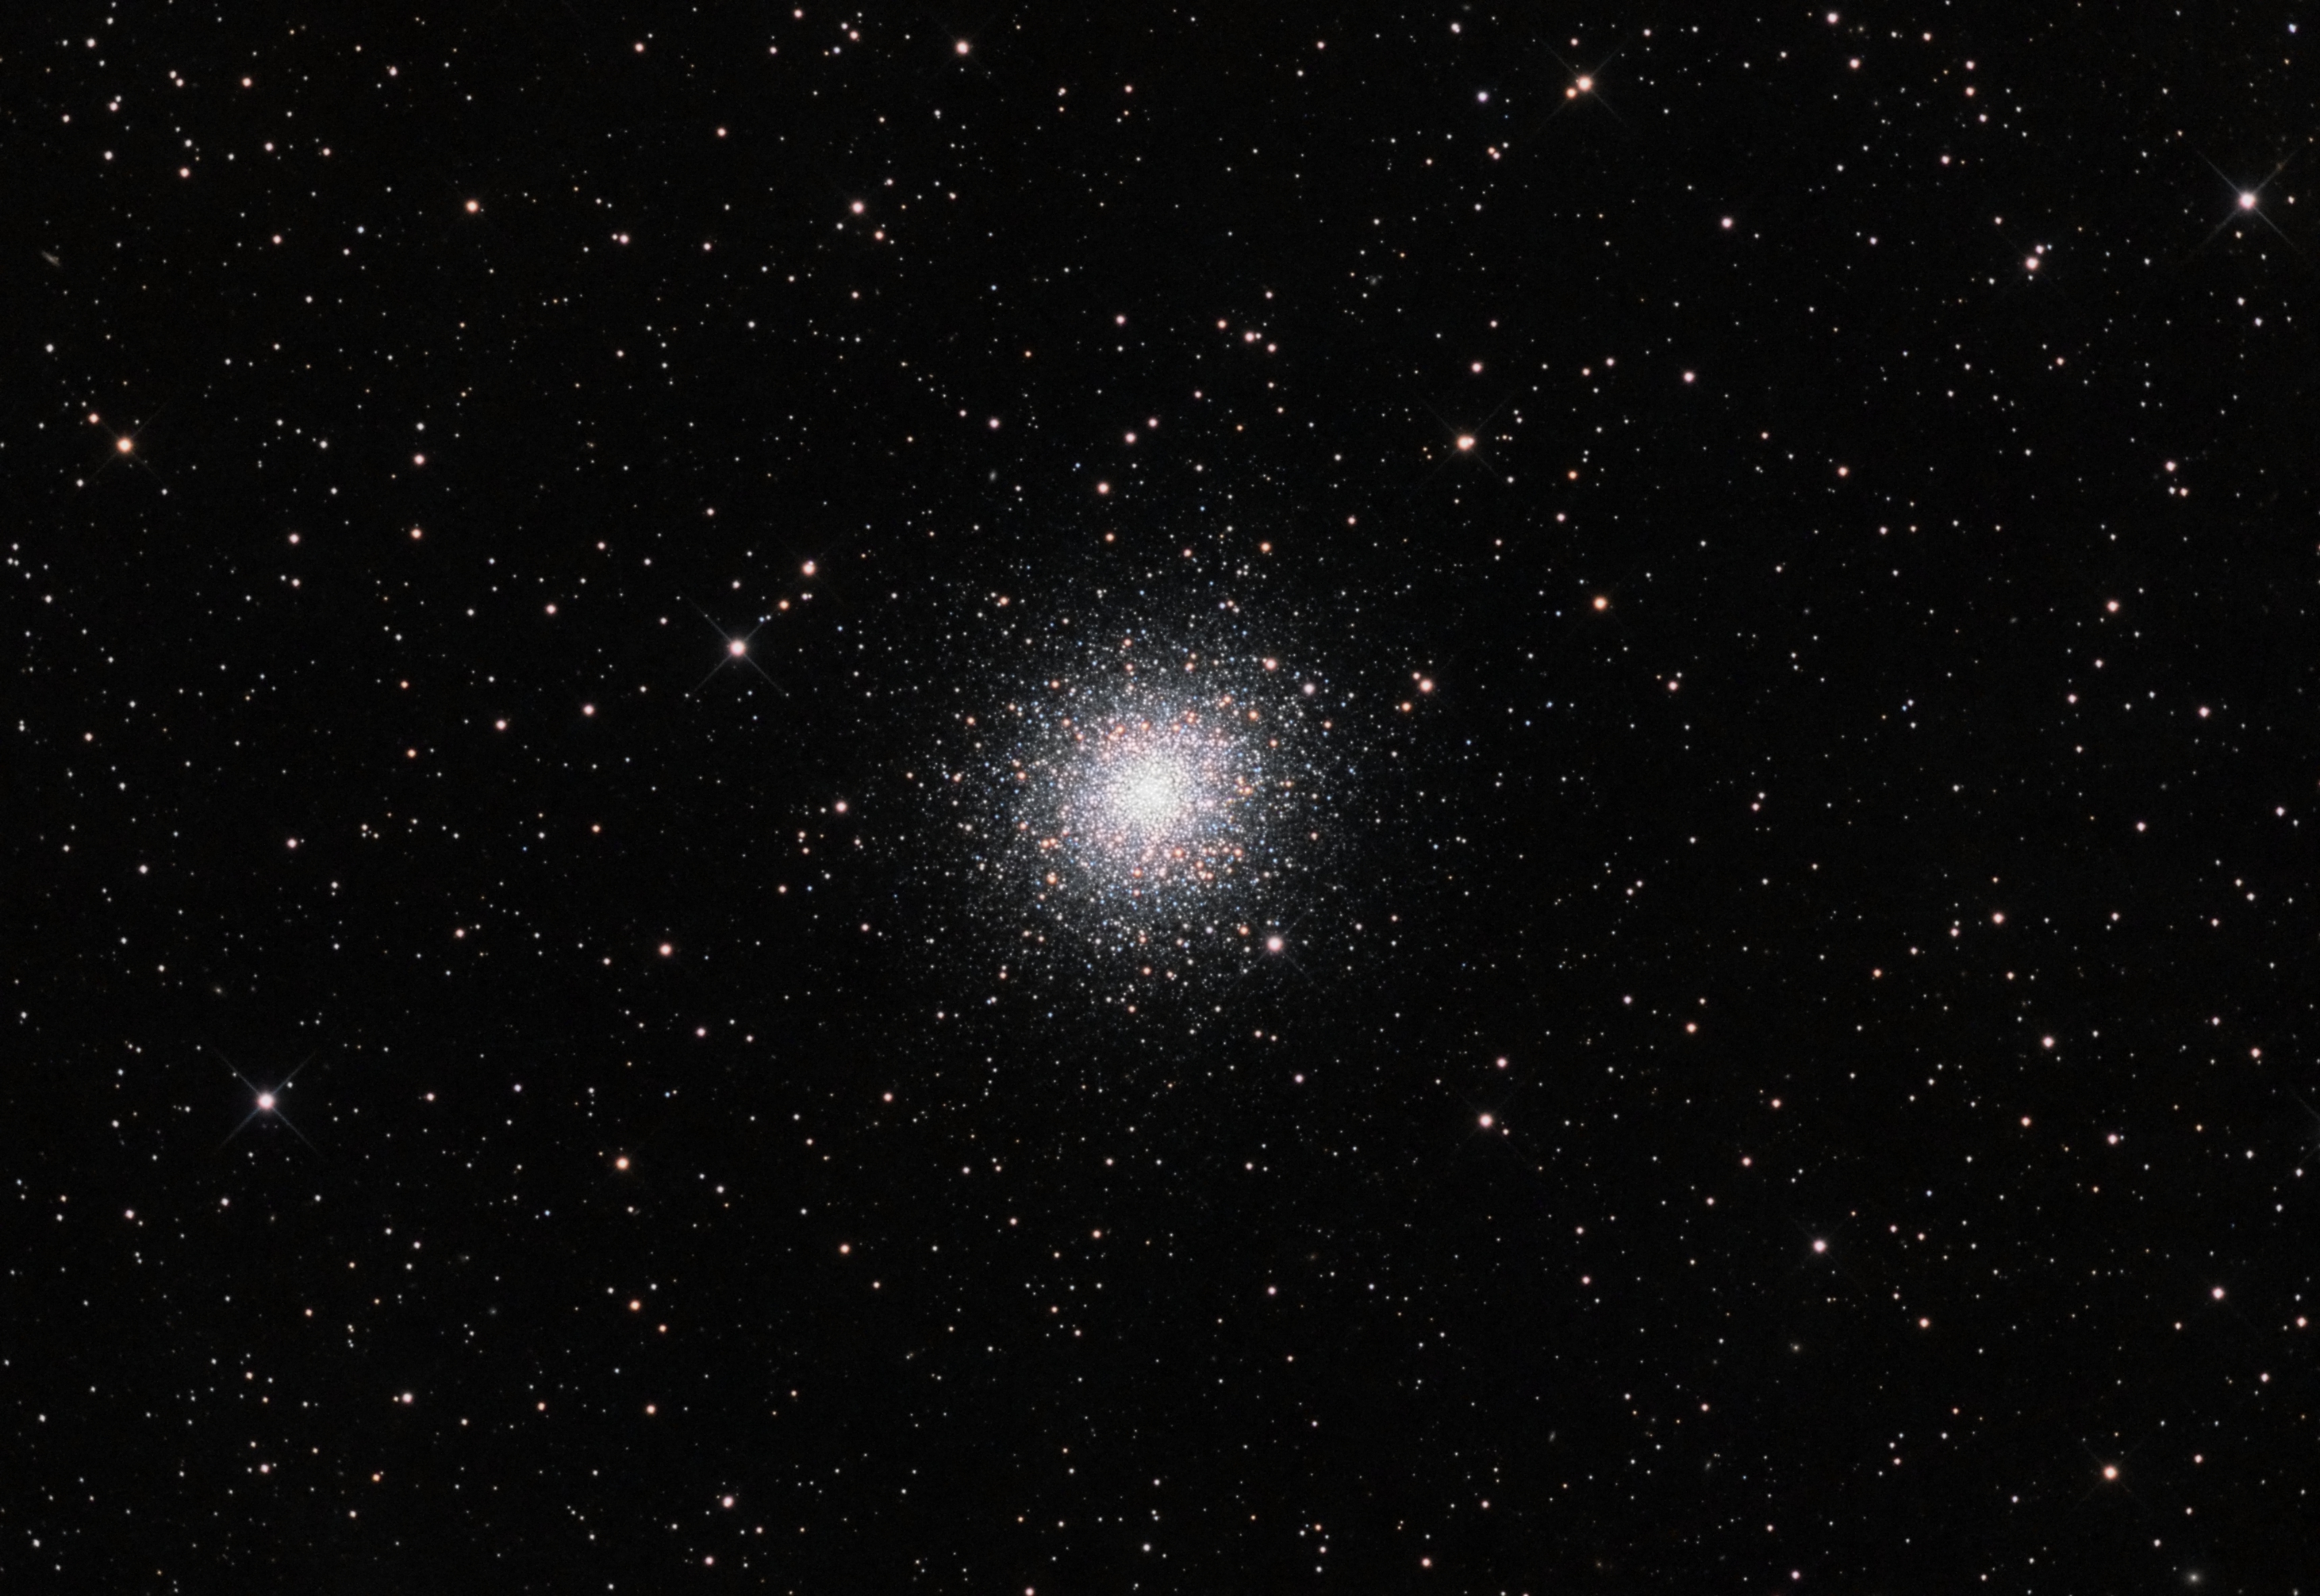 Globular Cluster M2 by Ron Brecher